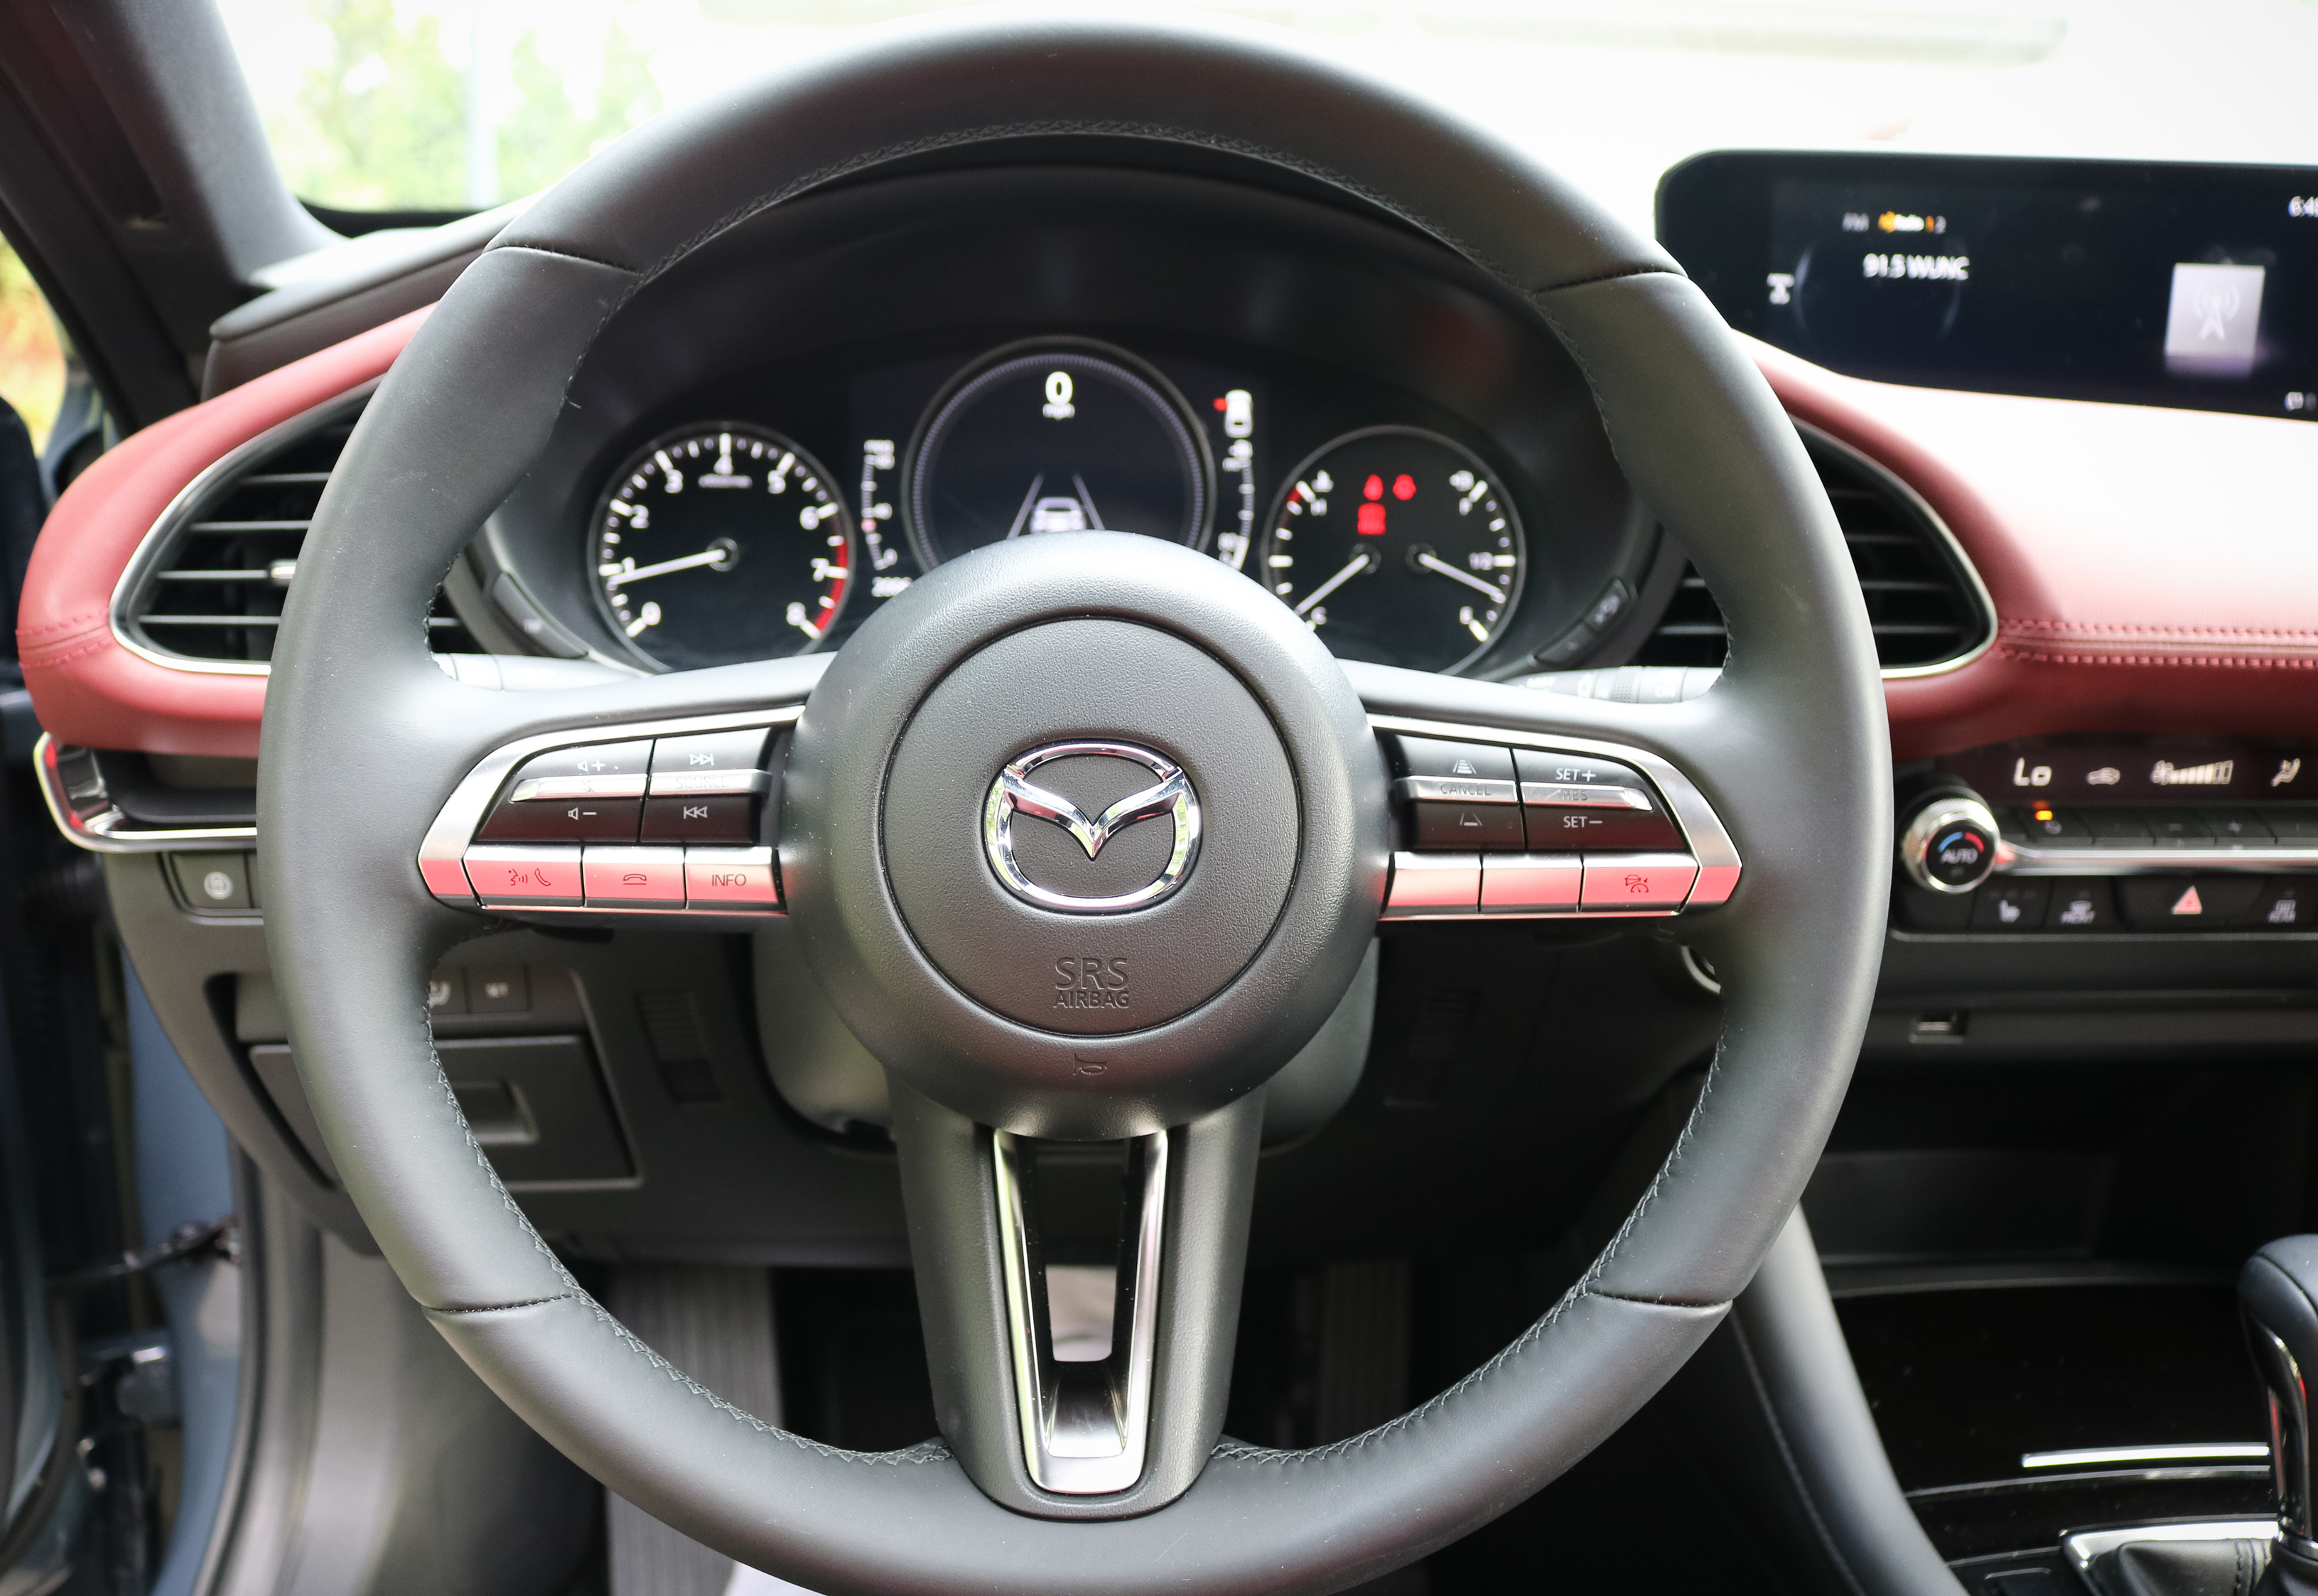 Mazda 3 hatchback two-tone interior